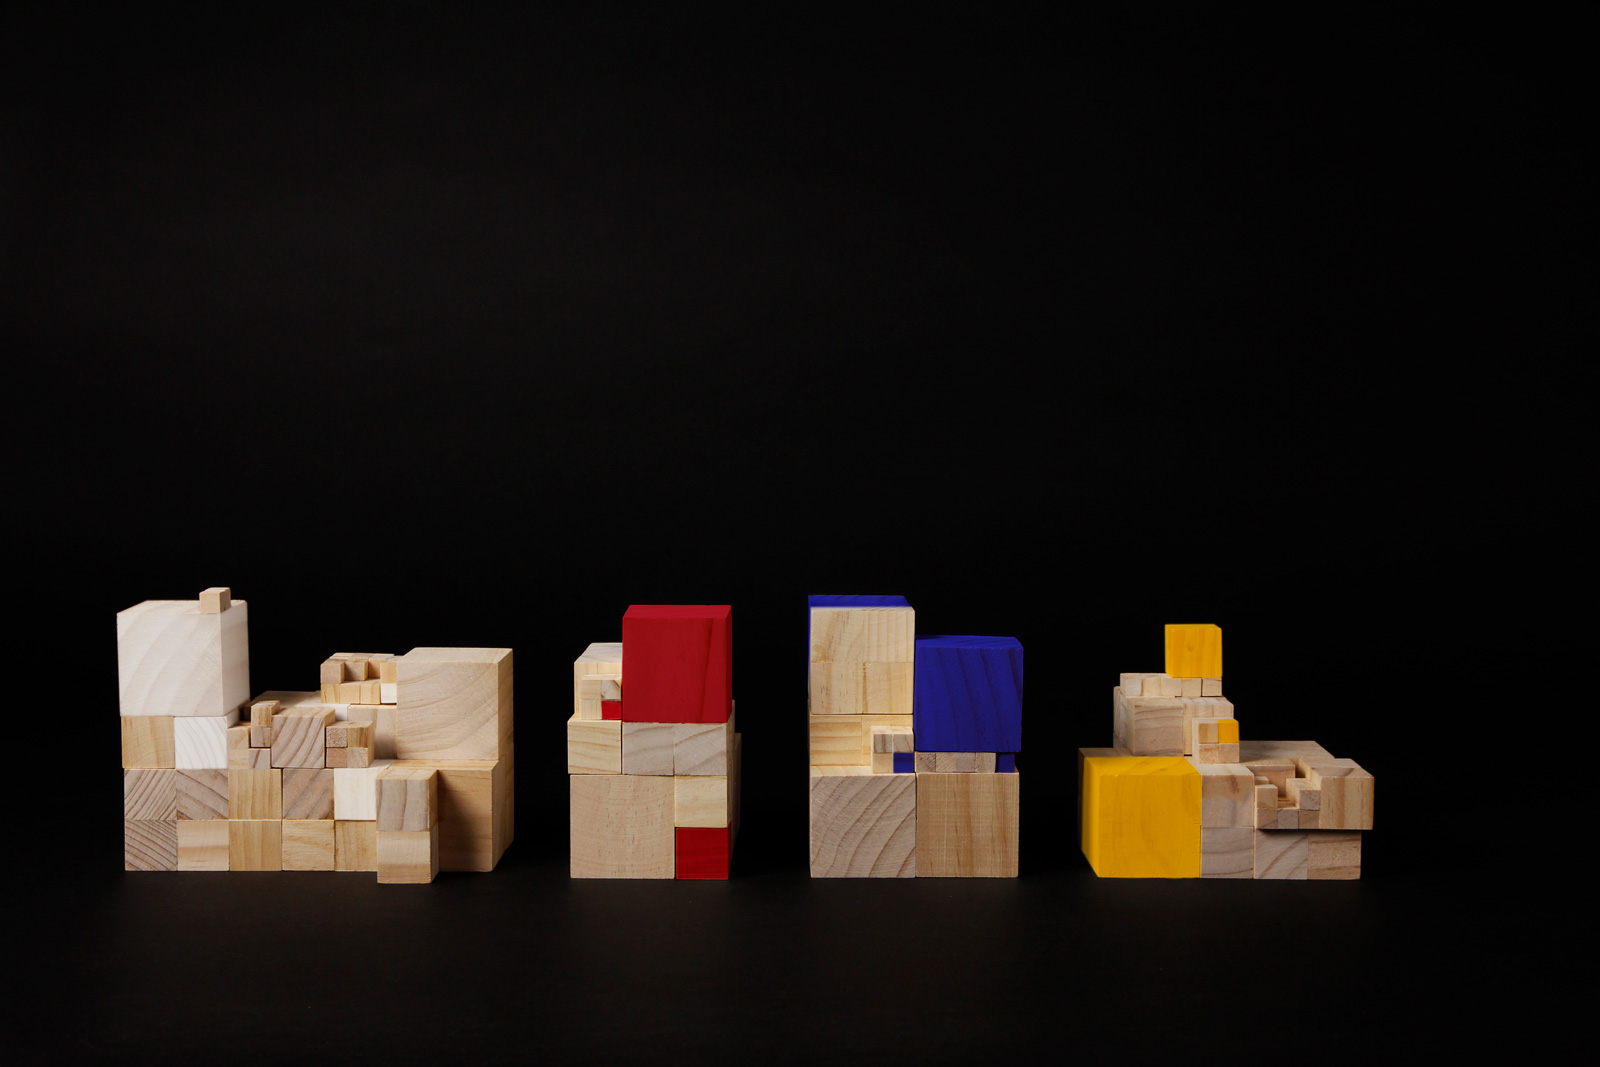 Wooden cube bricks, some coloured in red, yellow and blue, stacked into piles.